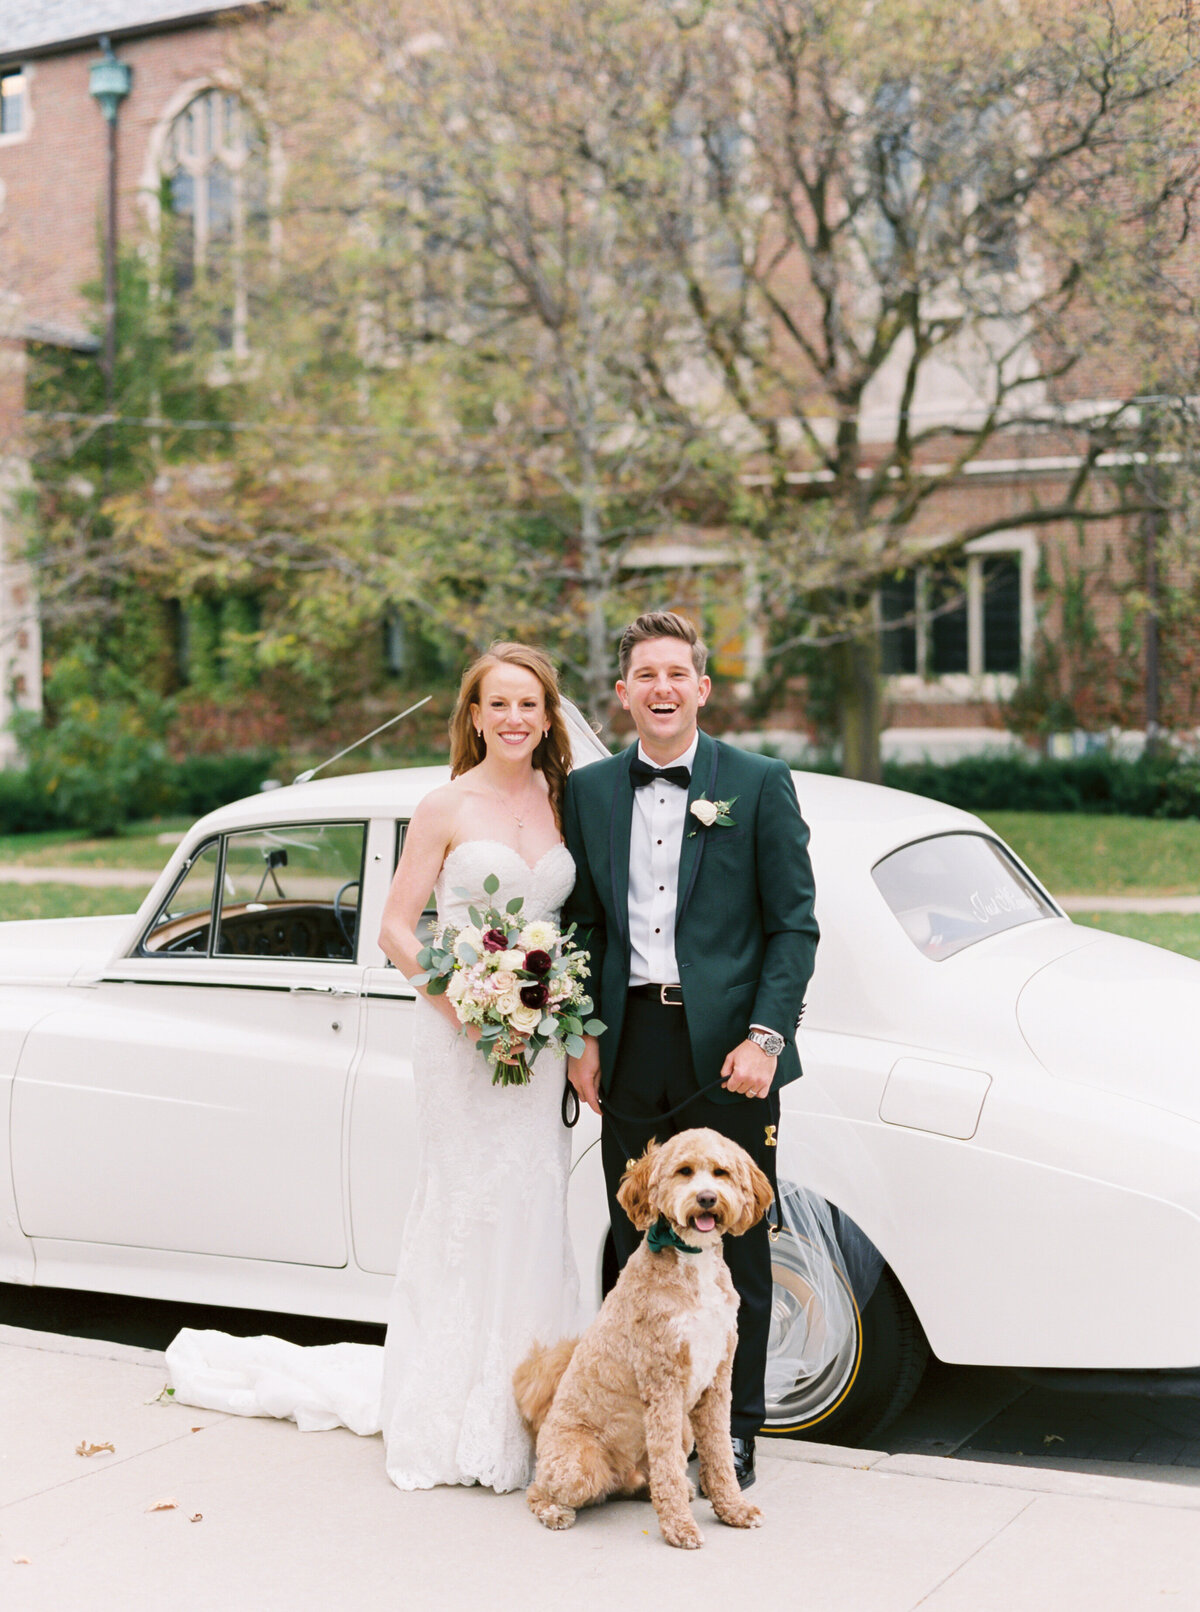 TiffaneyChildsPhotography-ChicagoWeddingPhotographer-Colleen&Ned-UniversityofChicago-180